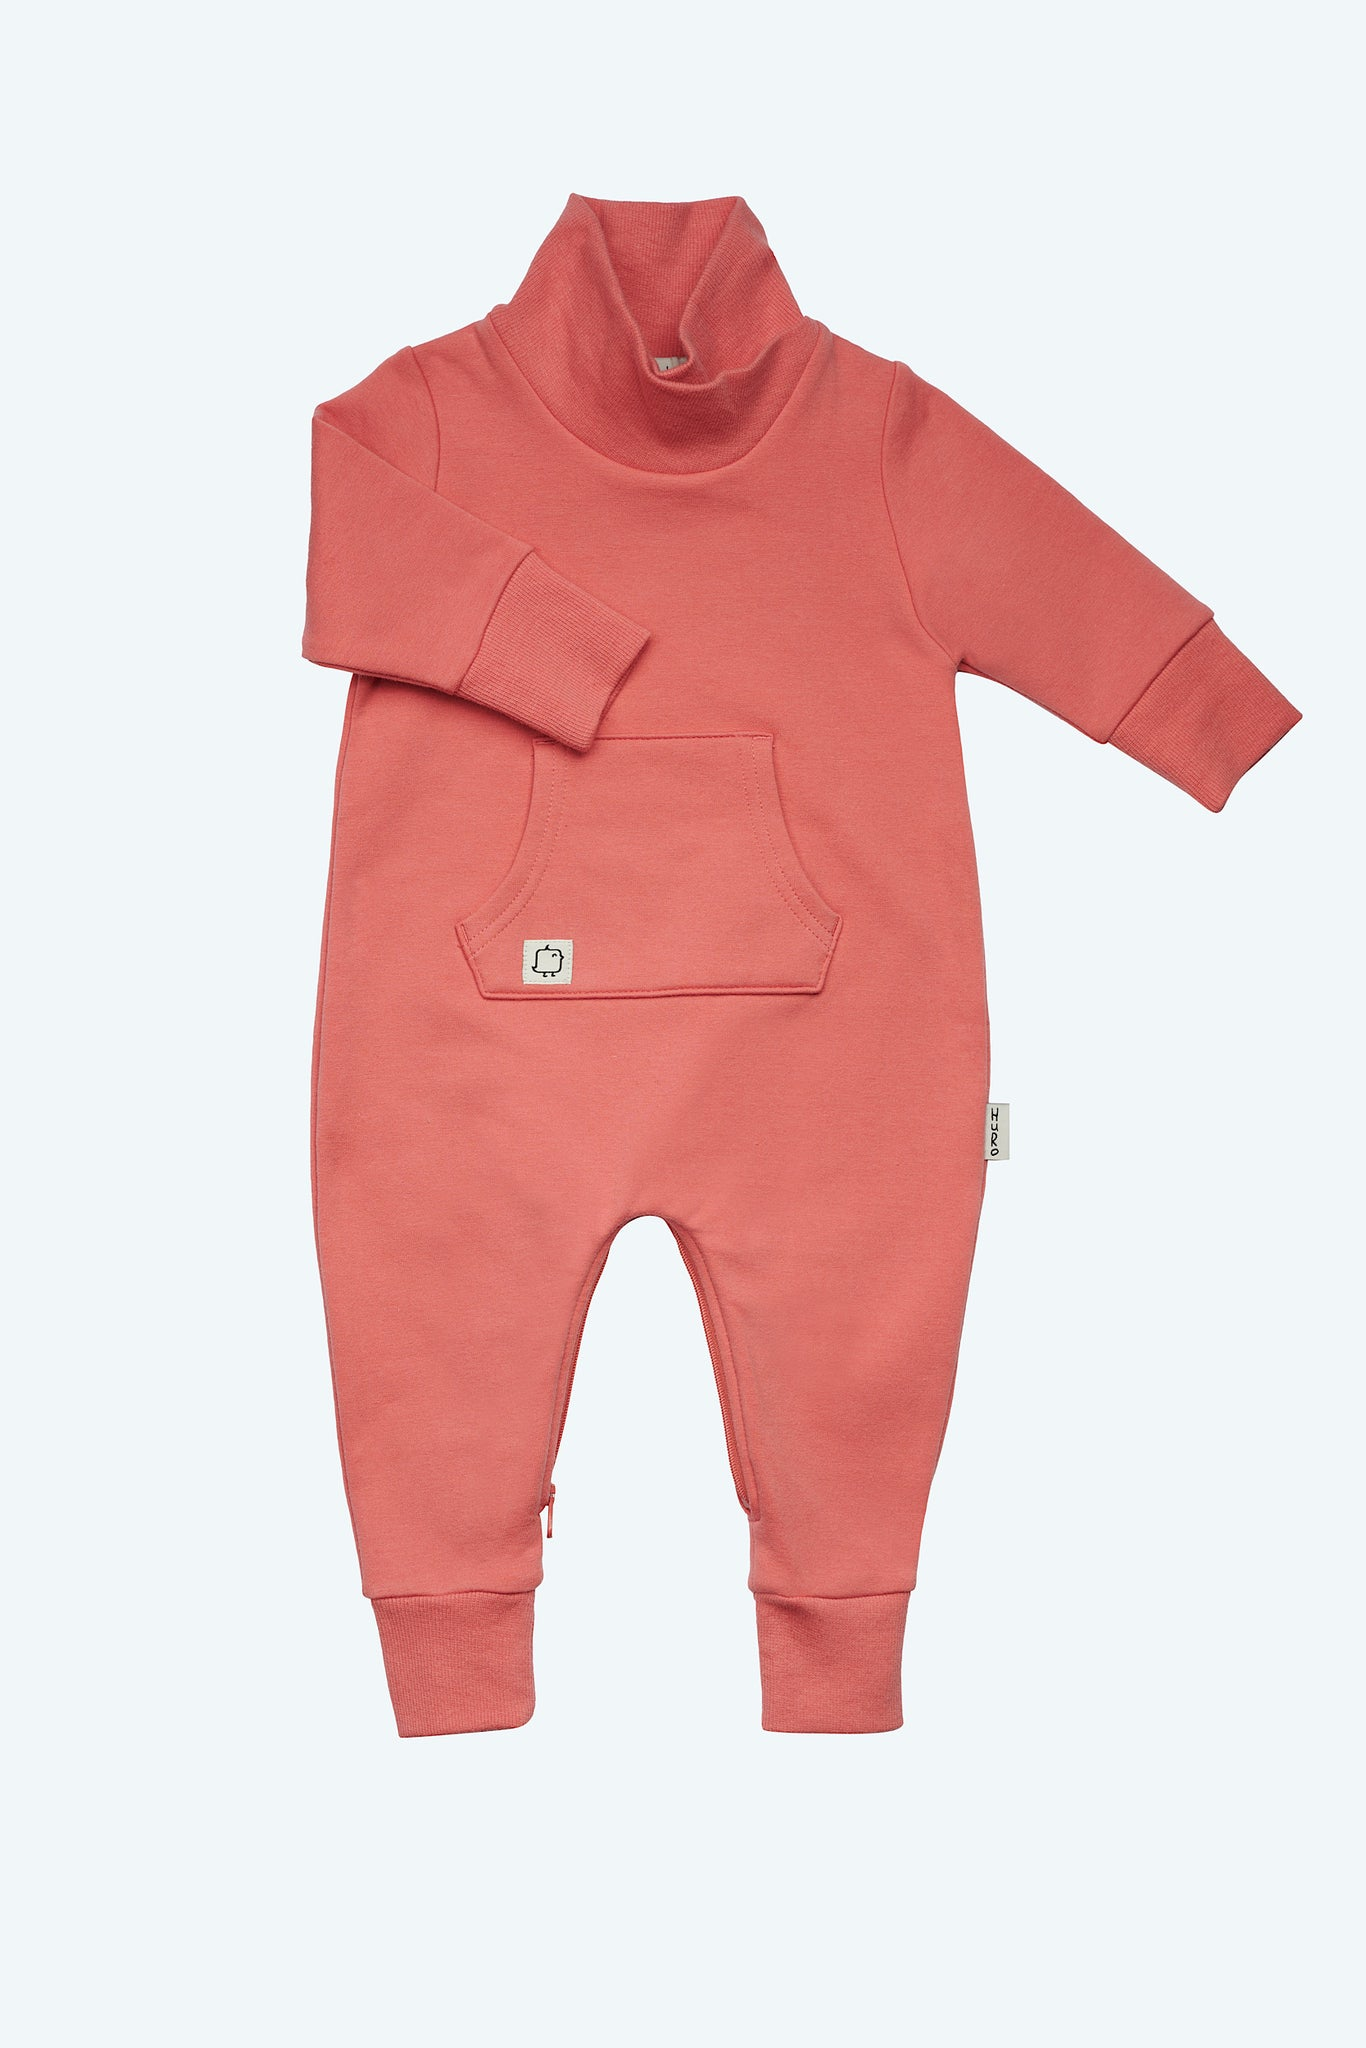 Turtle Suit - Watermelon - HuRo Kids Clothing